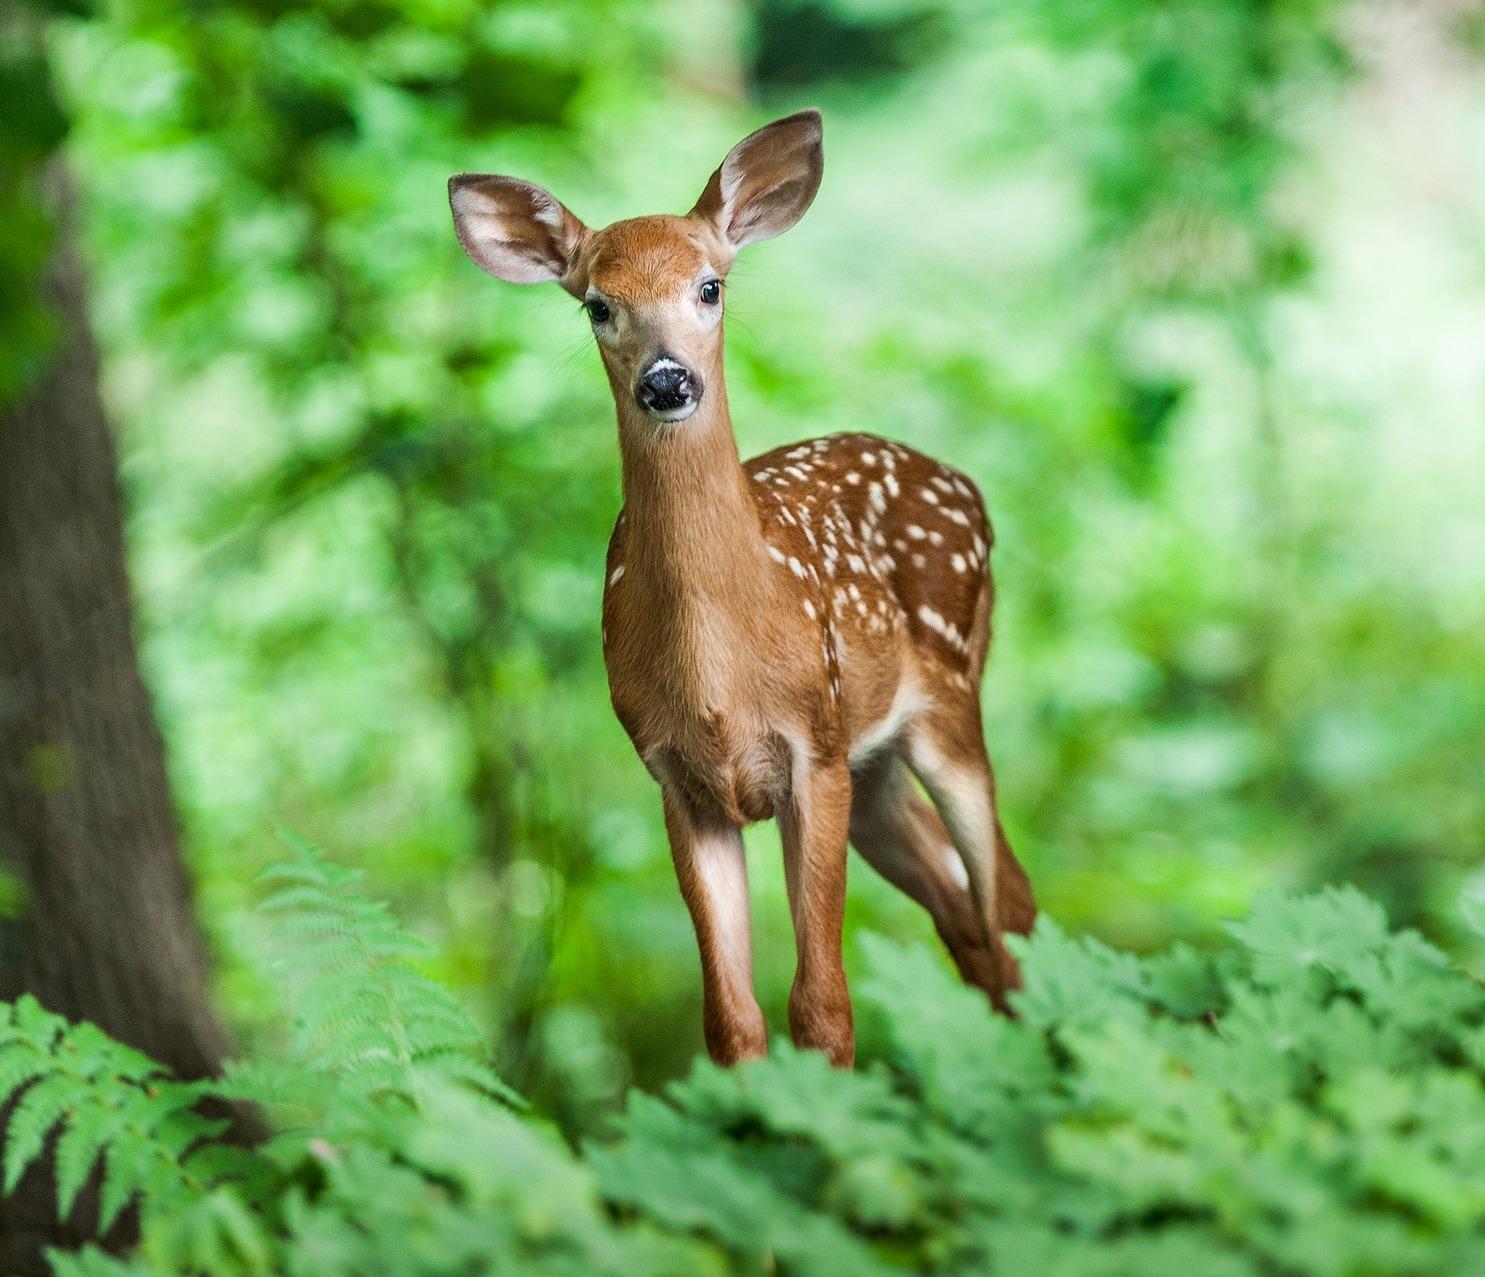 Deer: How To Identity And Keep Deer Out Of Your Garden | The Old Farmeru0027s  Almanac